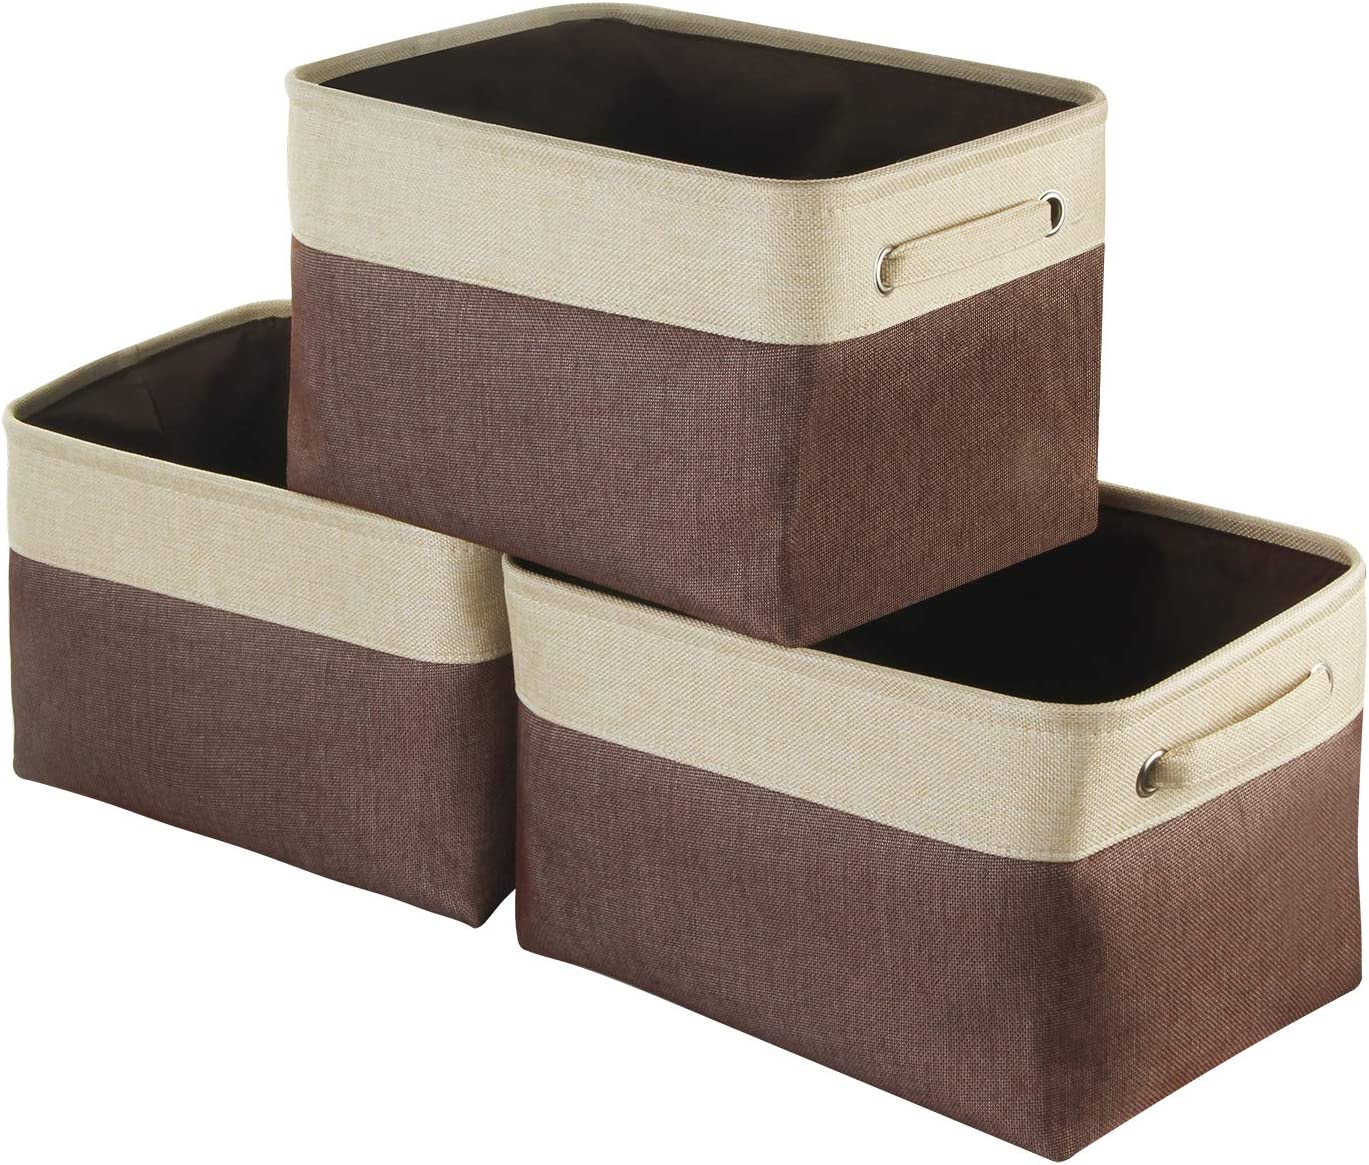 Awekris Large Storage Basket Bin Set [3-Pack] Storage Cube Box Foldable Canvas Fabric Collapsible Organizer with Handles for Home Office Closet Toys Clothes Kids Room Nursery (Grey) (Coffee)